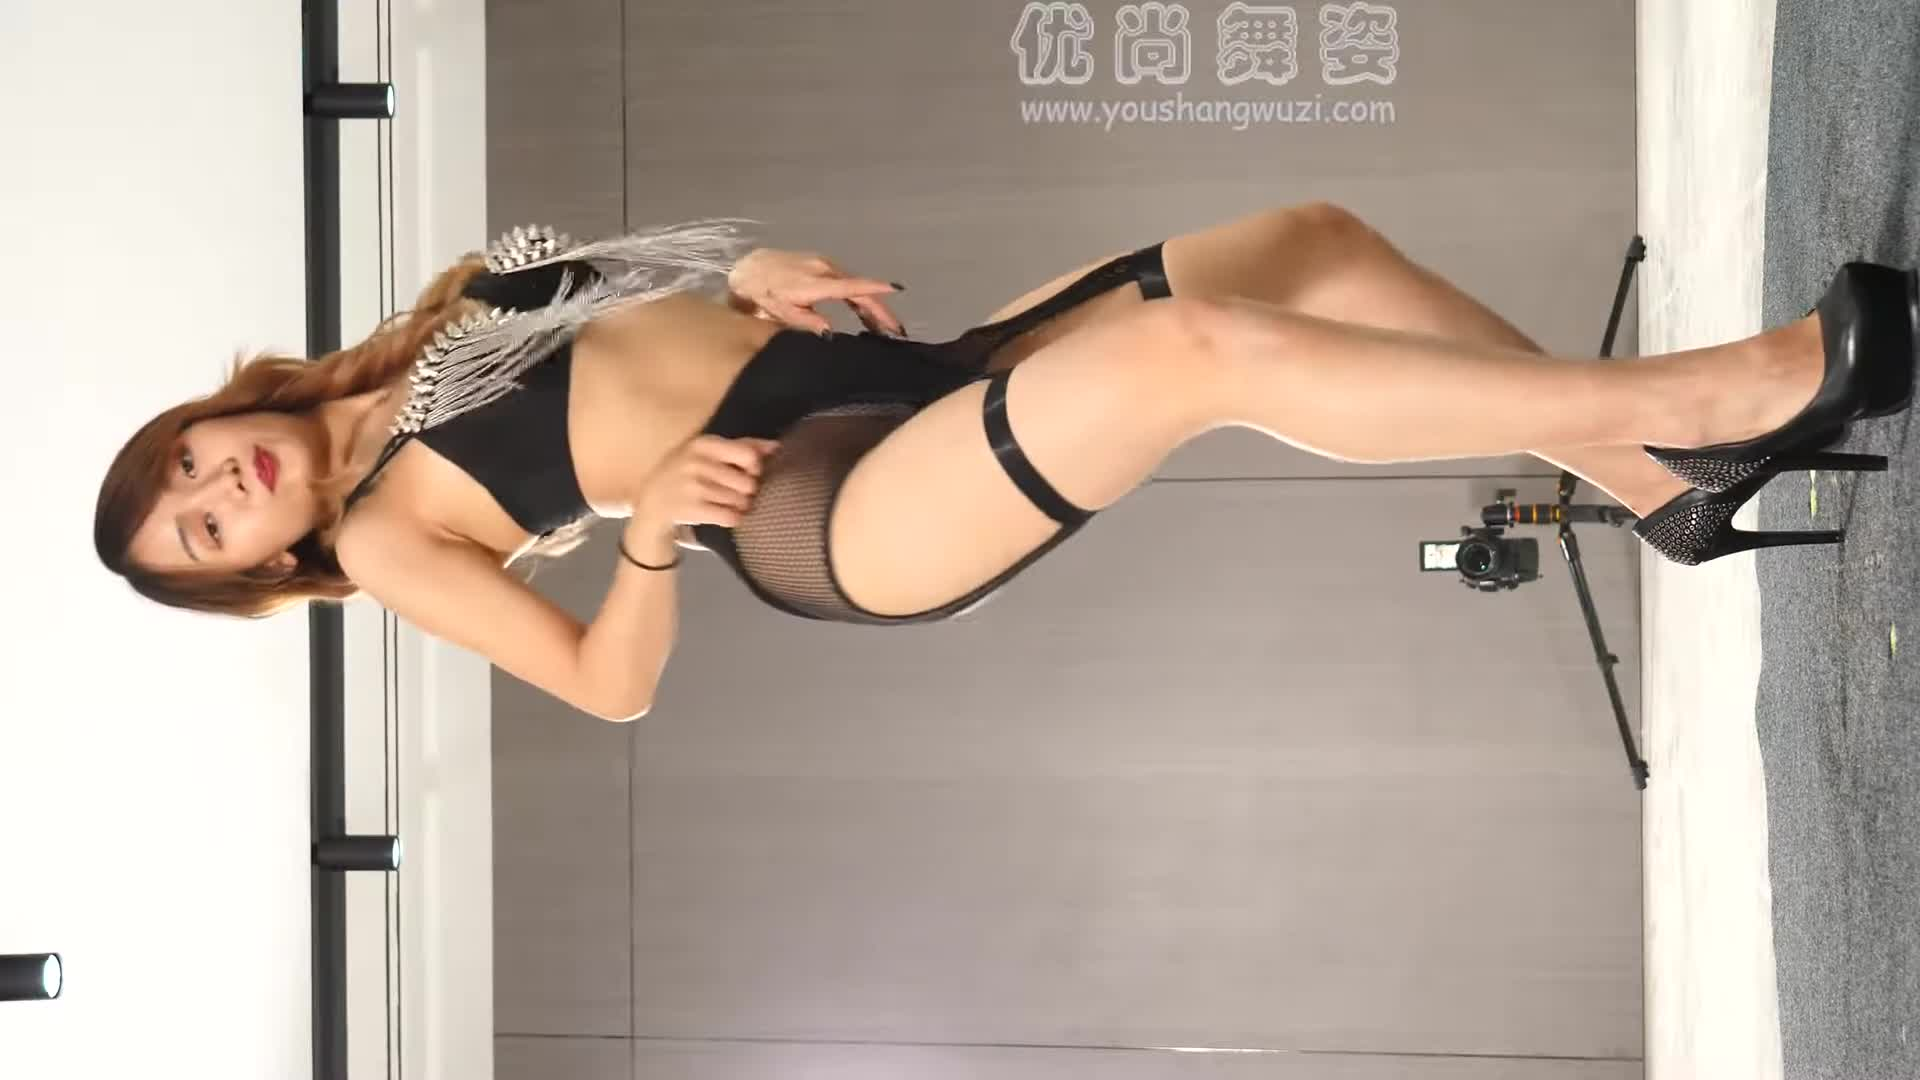 Youshang Dance Ding Ding Lingerie and Stockings Hot Dance Who suffers this kind of dance